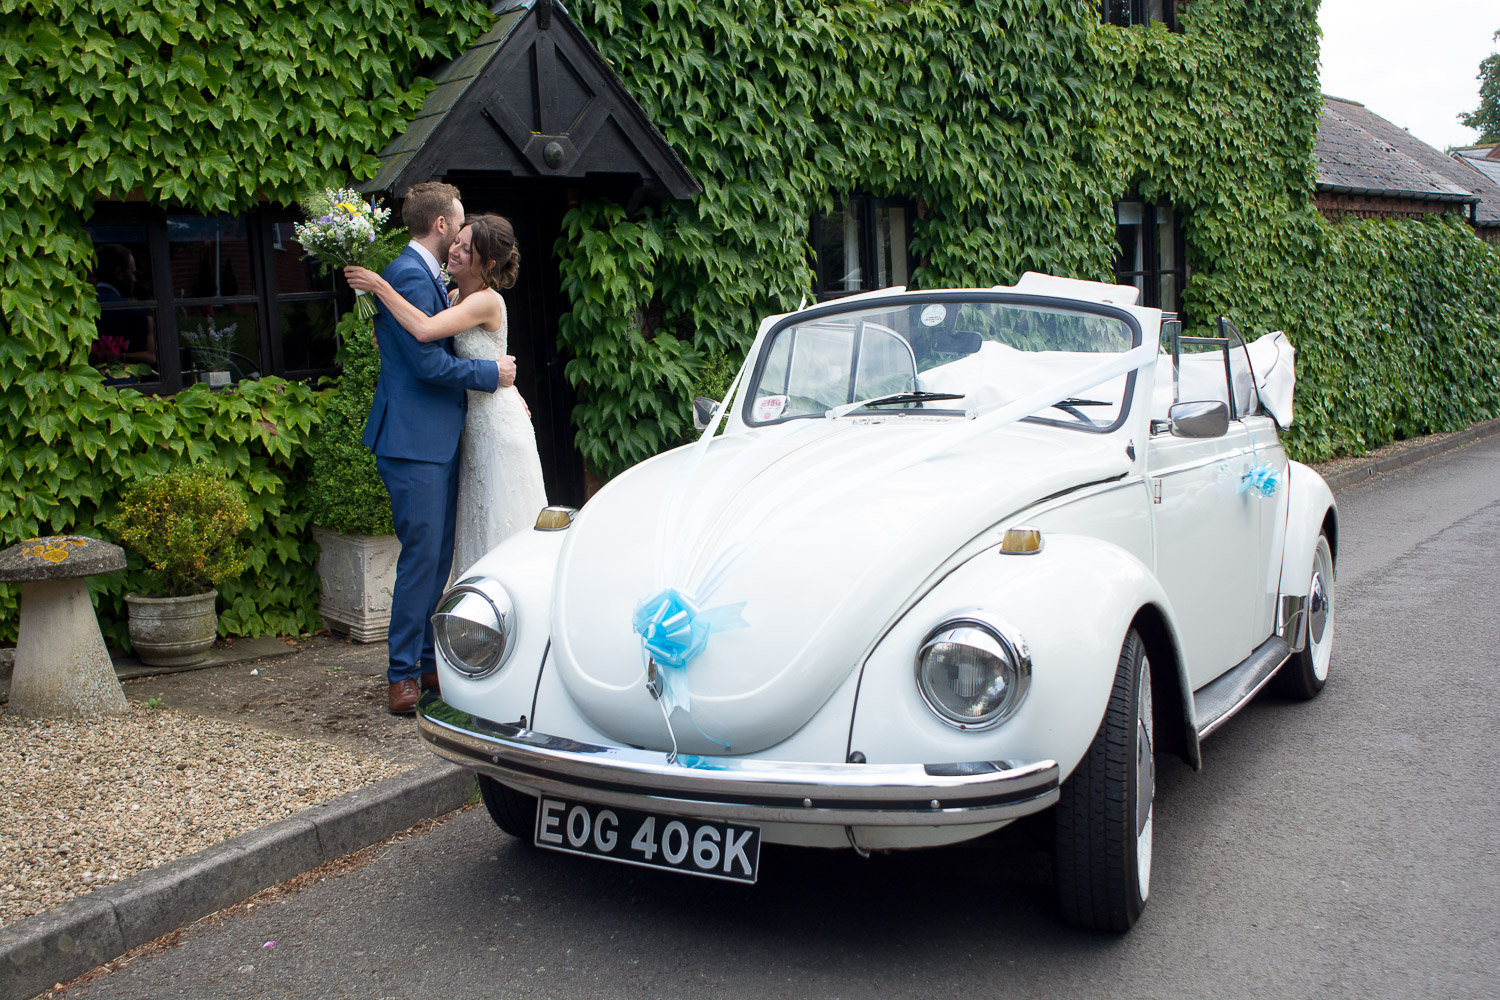 bride and groom cuddle next to their convertible vw beetle at wedding yurts wedding in leicestershire